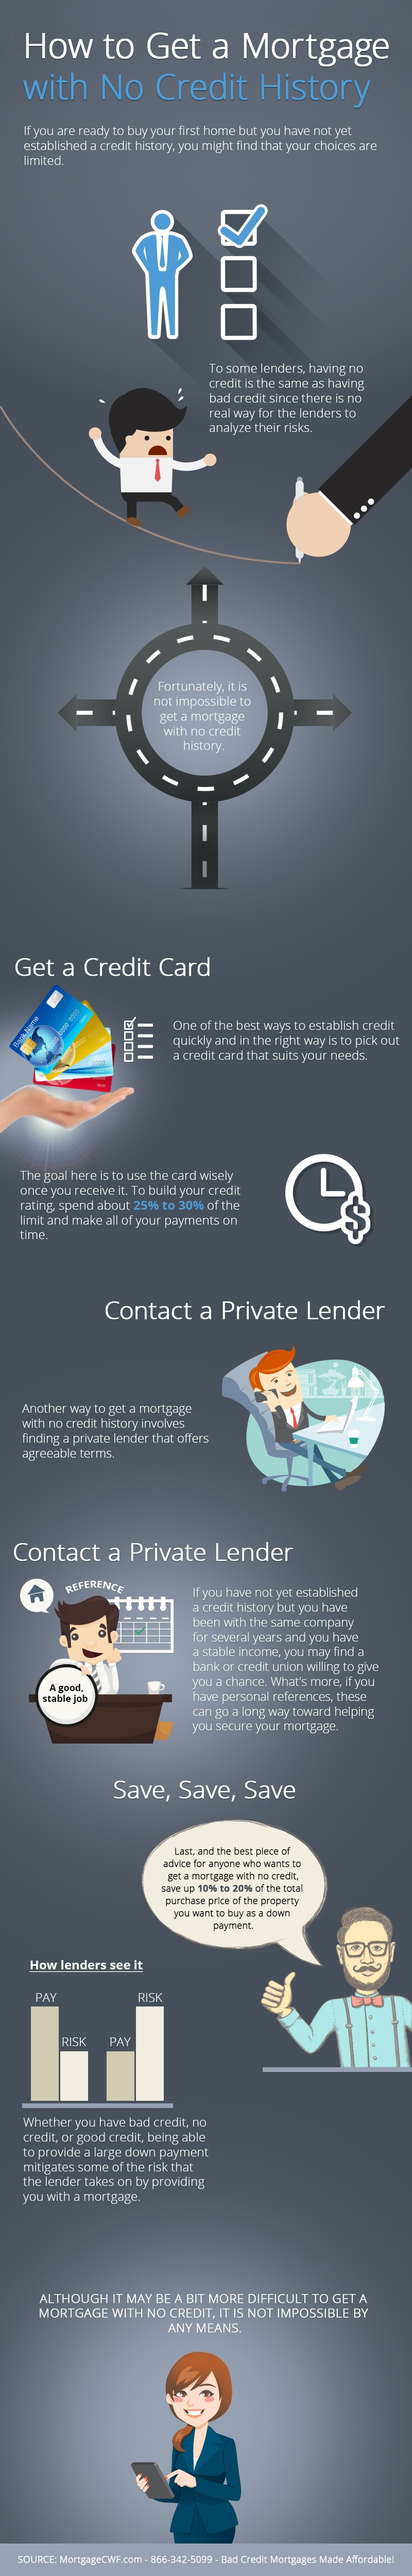 How to Get a Mortgage with No Credit History